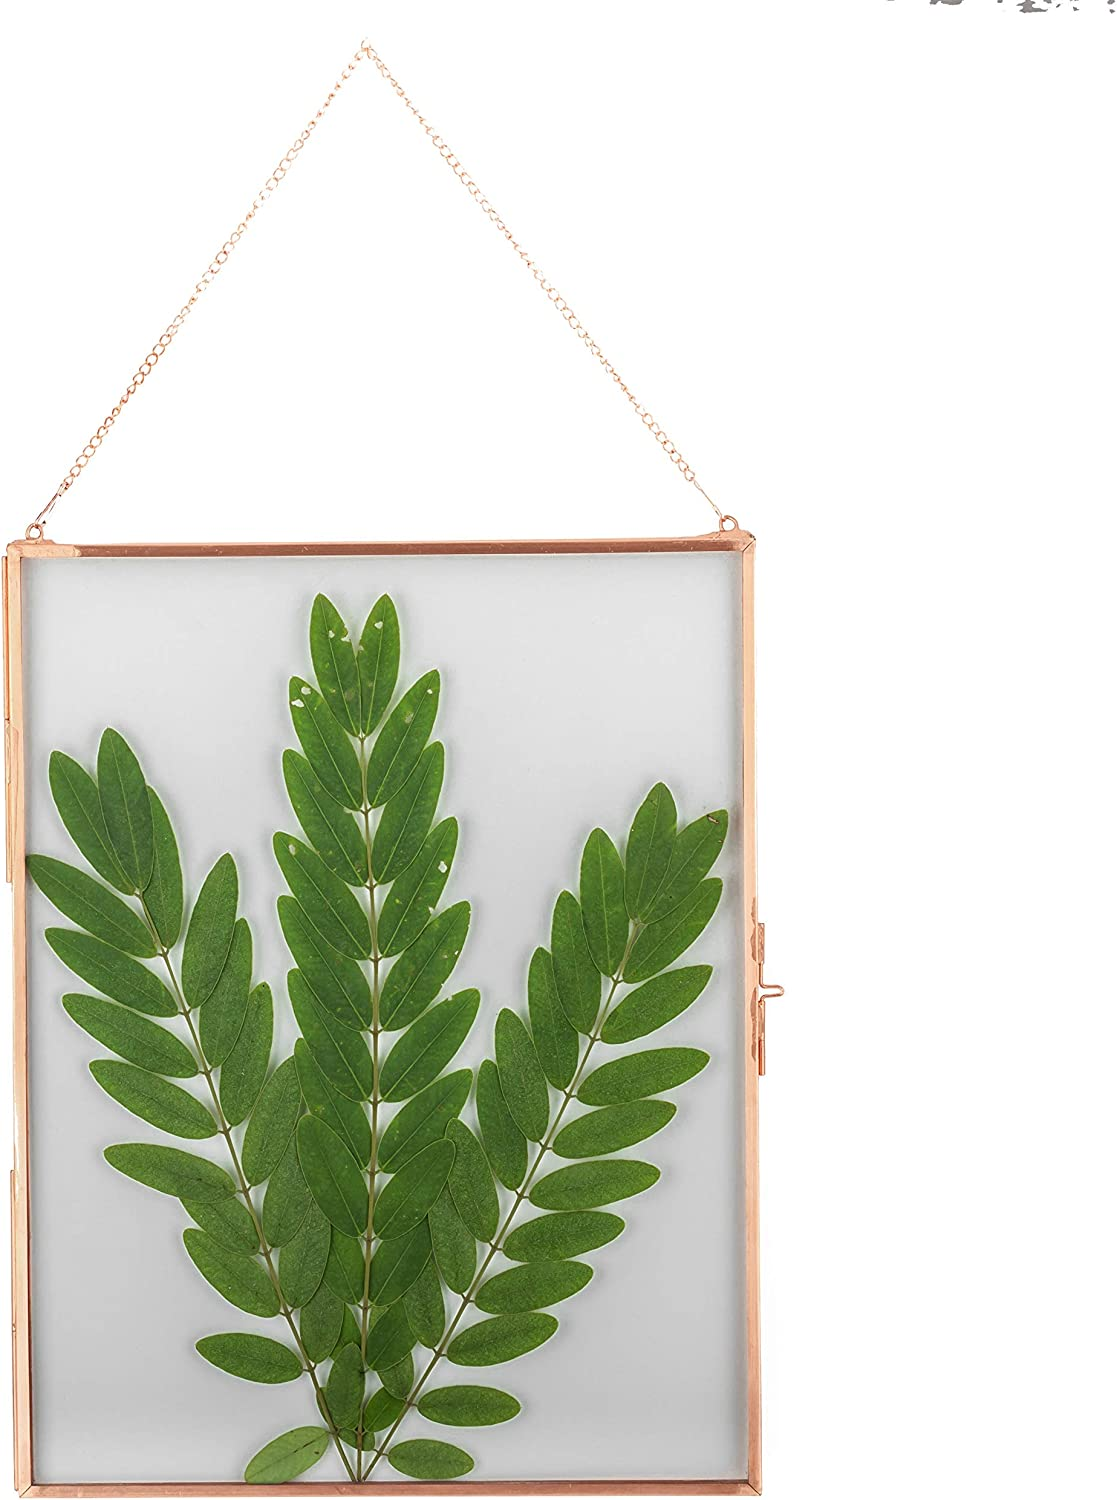 NCYP 14x11 Hanging Glass Floating Frame for Artwork Certificate Photo Picture Display, Large Pure Copper Ornament Plant Specimen Clip, Wall Vertical Decor Rose Gold Card Holder, Glass Frame only